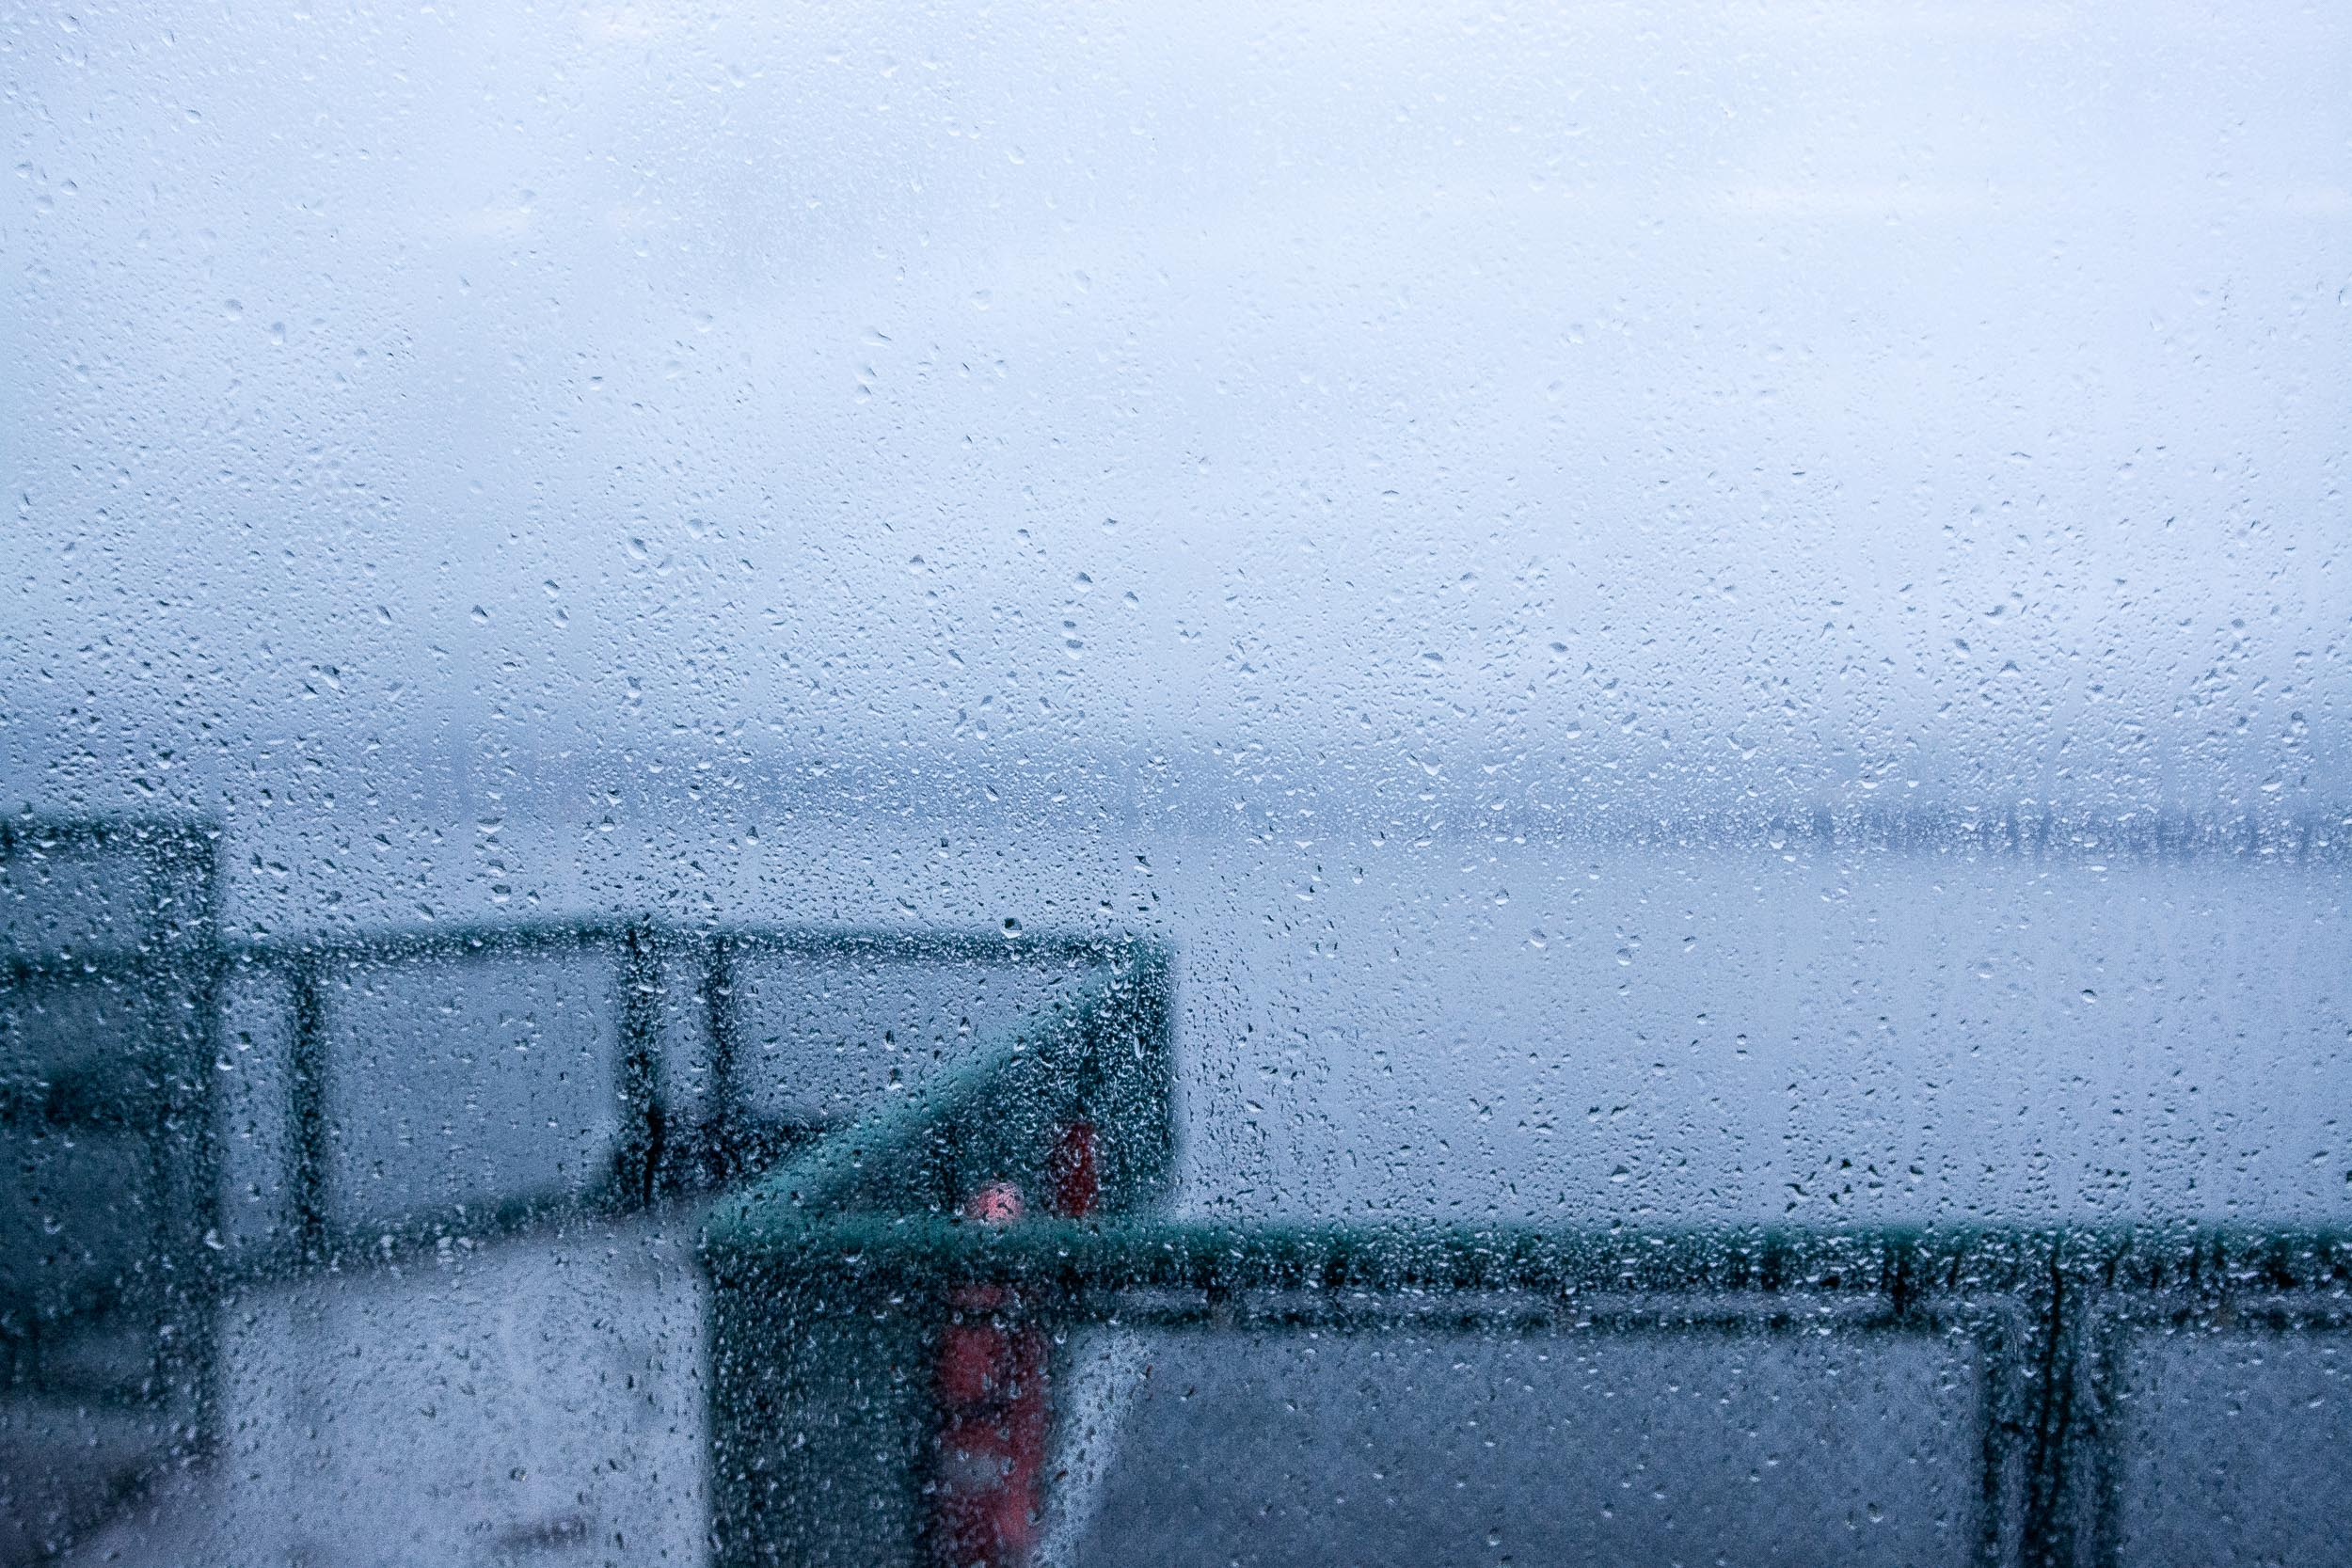 What if it rains? - We live in the Pacific Northwest and the weather is always a bit unpredictable. If the weather doesn't cooperate we will reschedule.